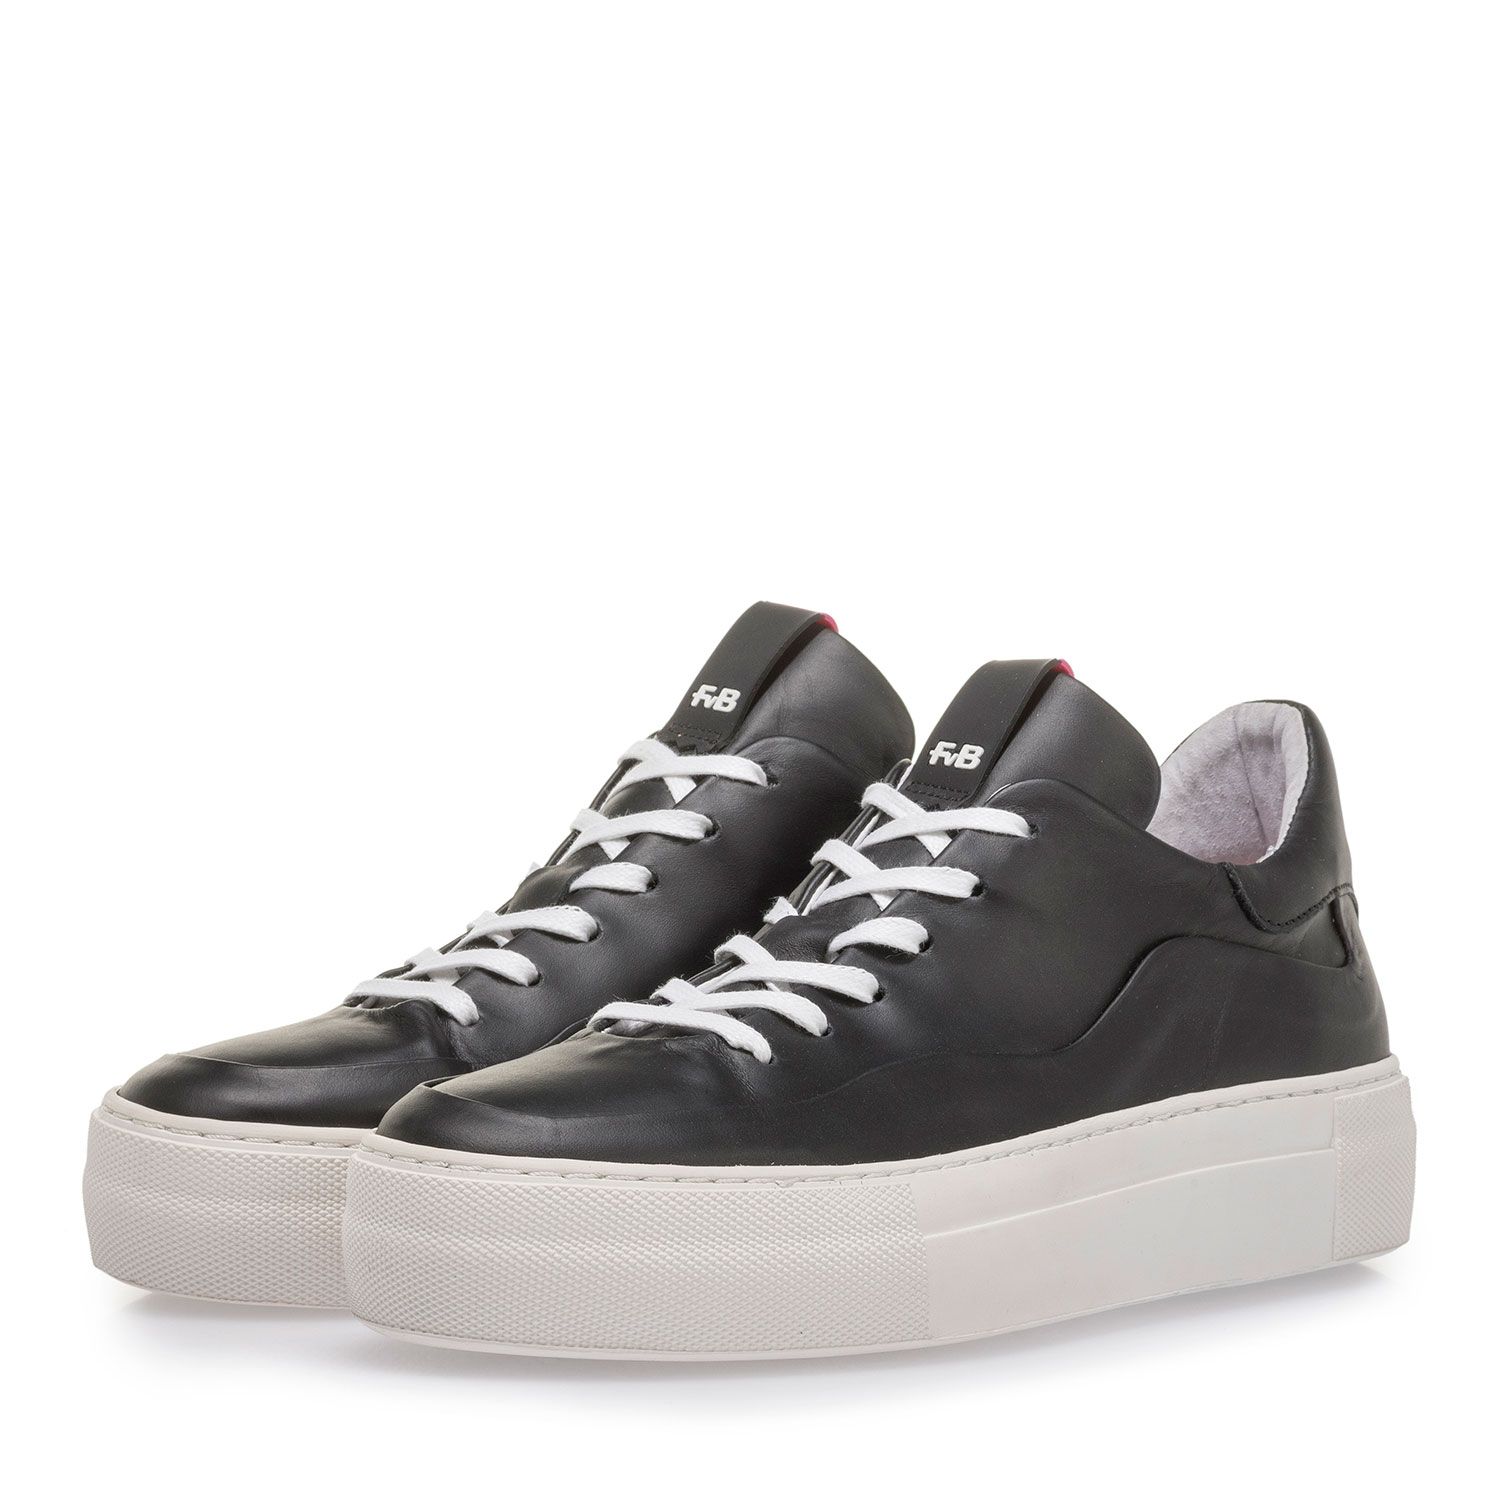 85298/01 - Black calf leather sneaker